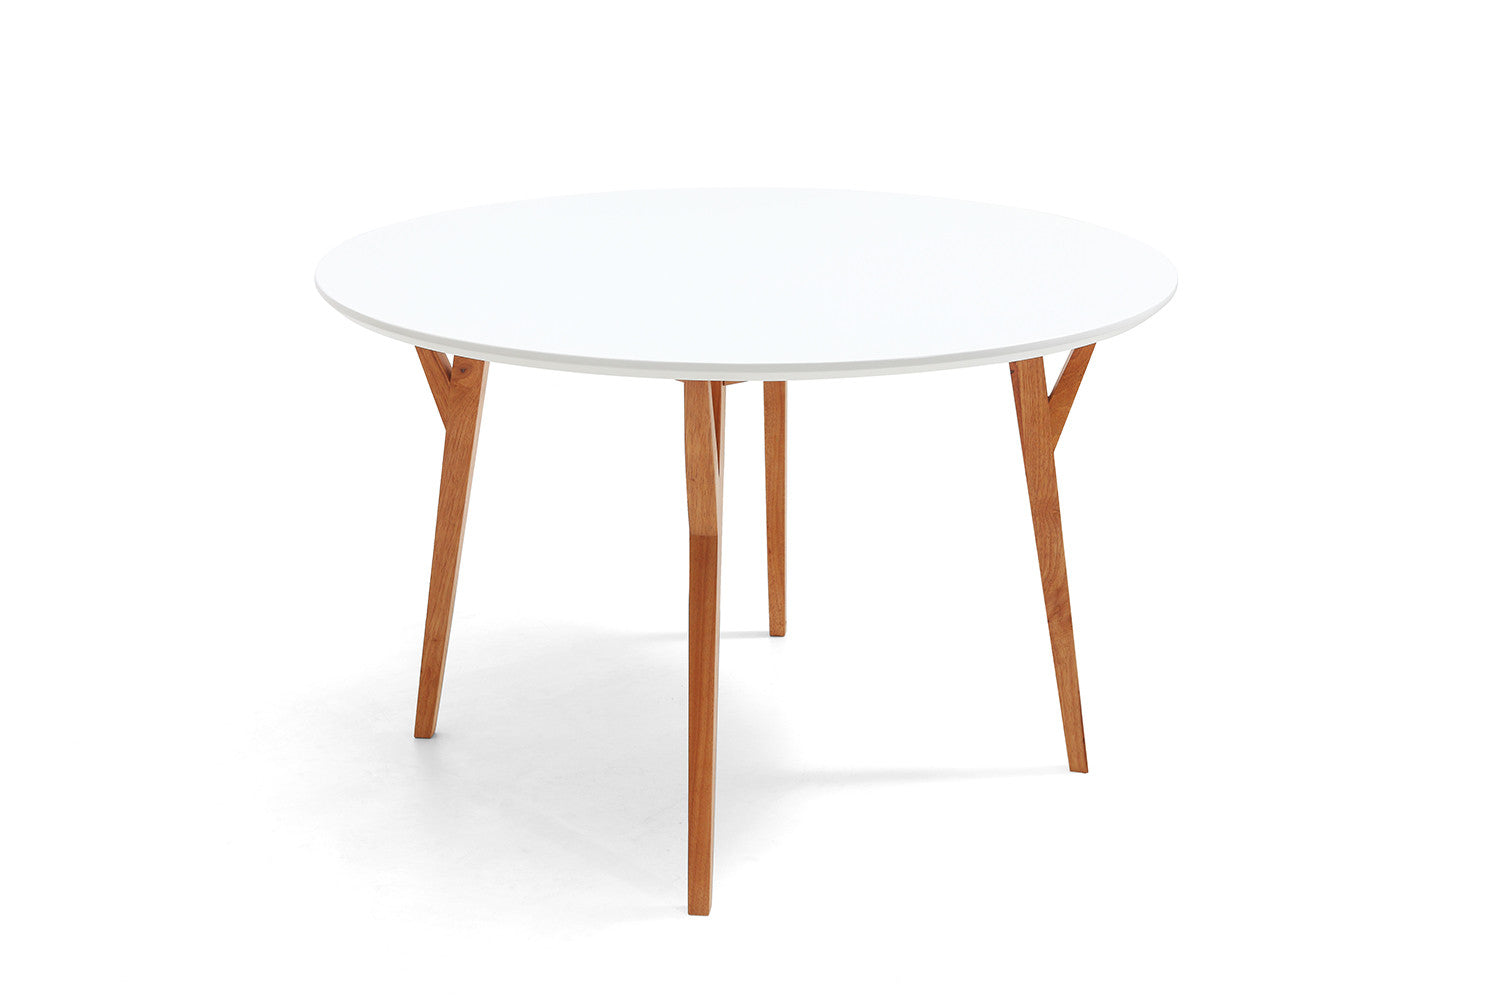 Table de salle manger ronde design scandinave moesa for Table a manger ronde avec rallonge